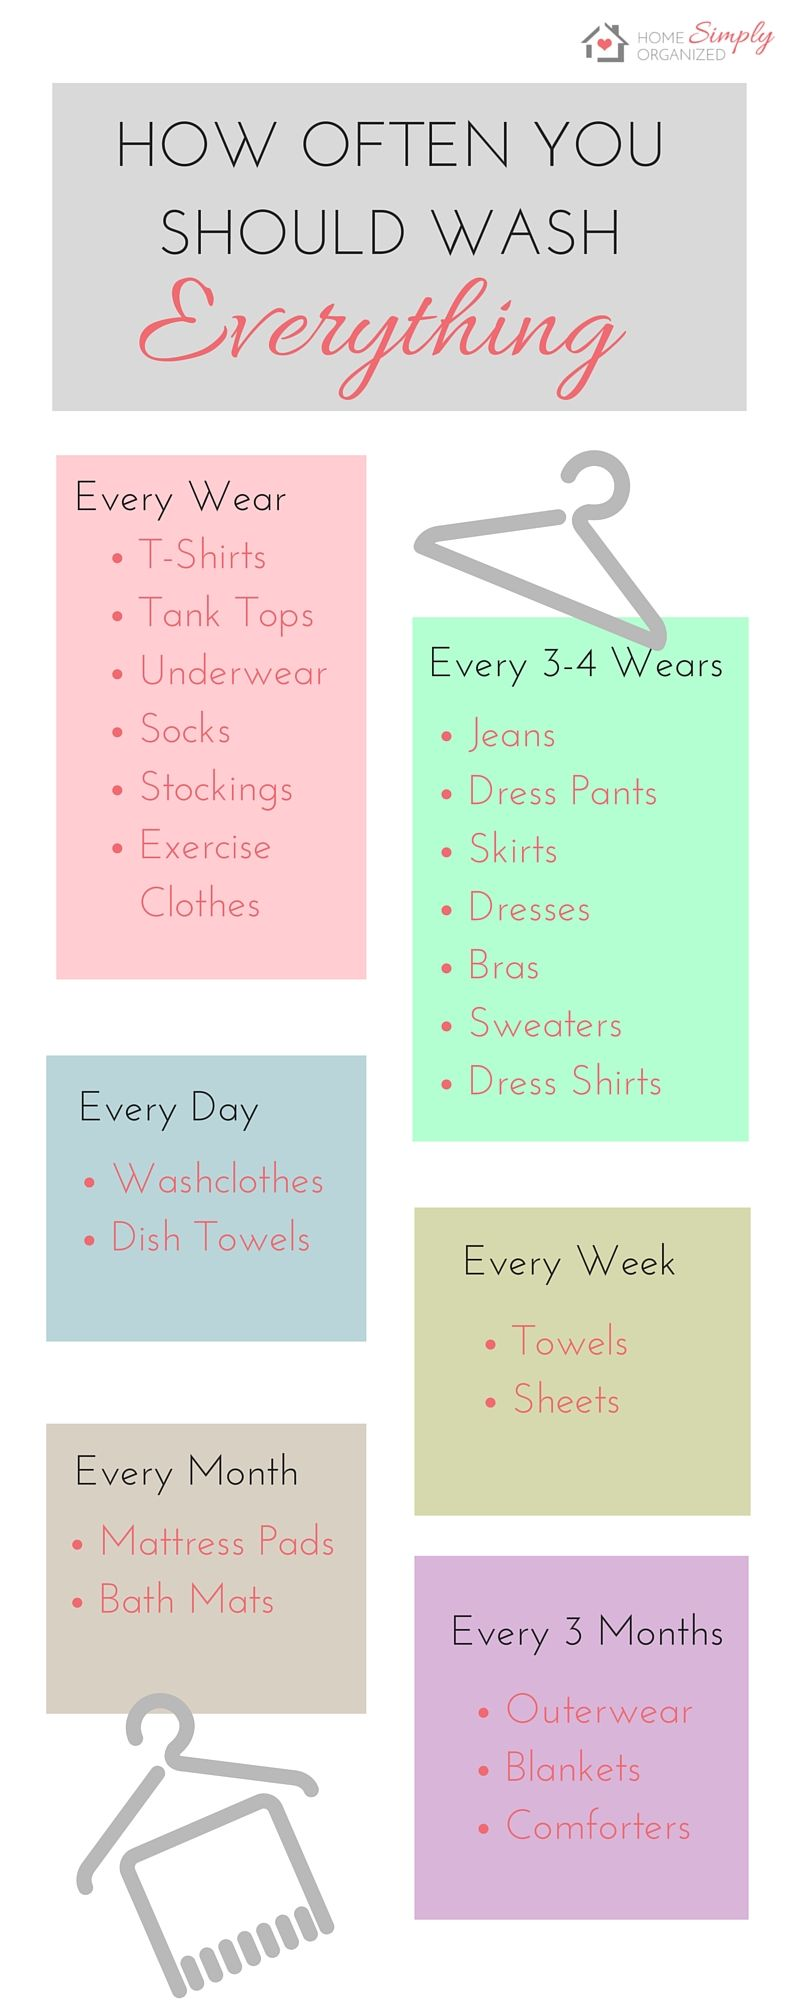 Download this weekly cleaning schedule for personal use only thank - 6 Ways To Make Laundry Less Dreadful